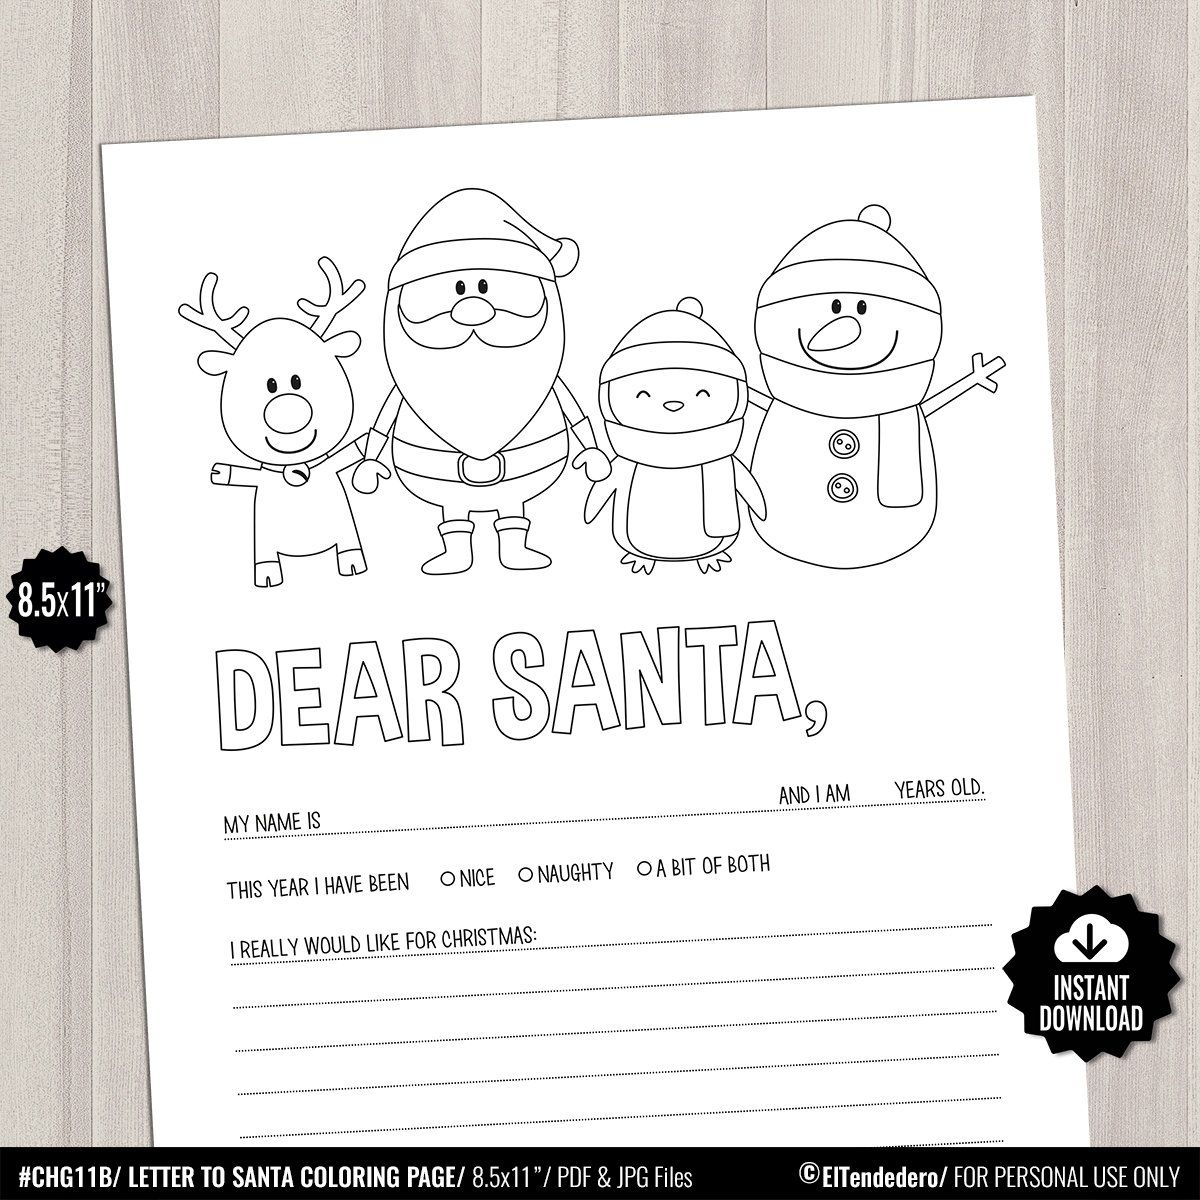 Printable Letter To Santa Coloring Page Christmas Holidays Games For Kids Fill In Gift List Dear S Santa Coloring Pages Santa Letter Letter Explaining Santa